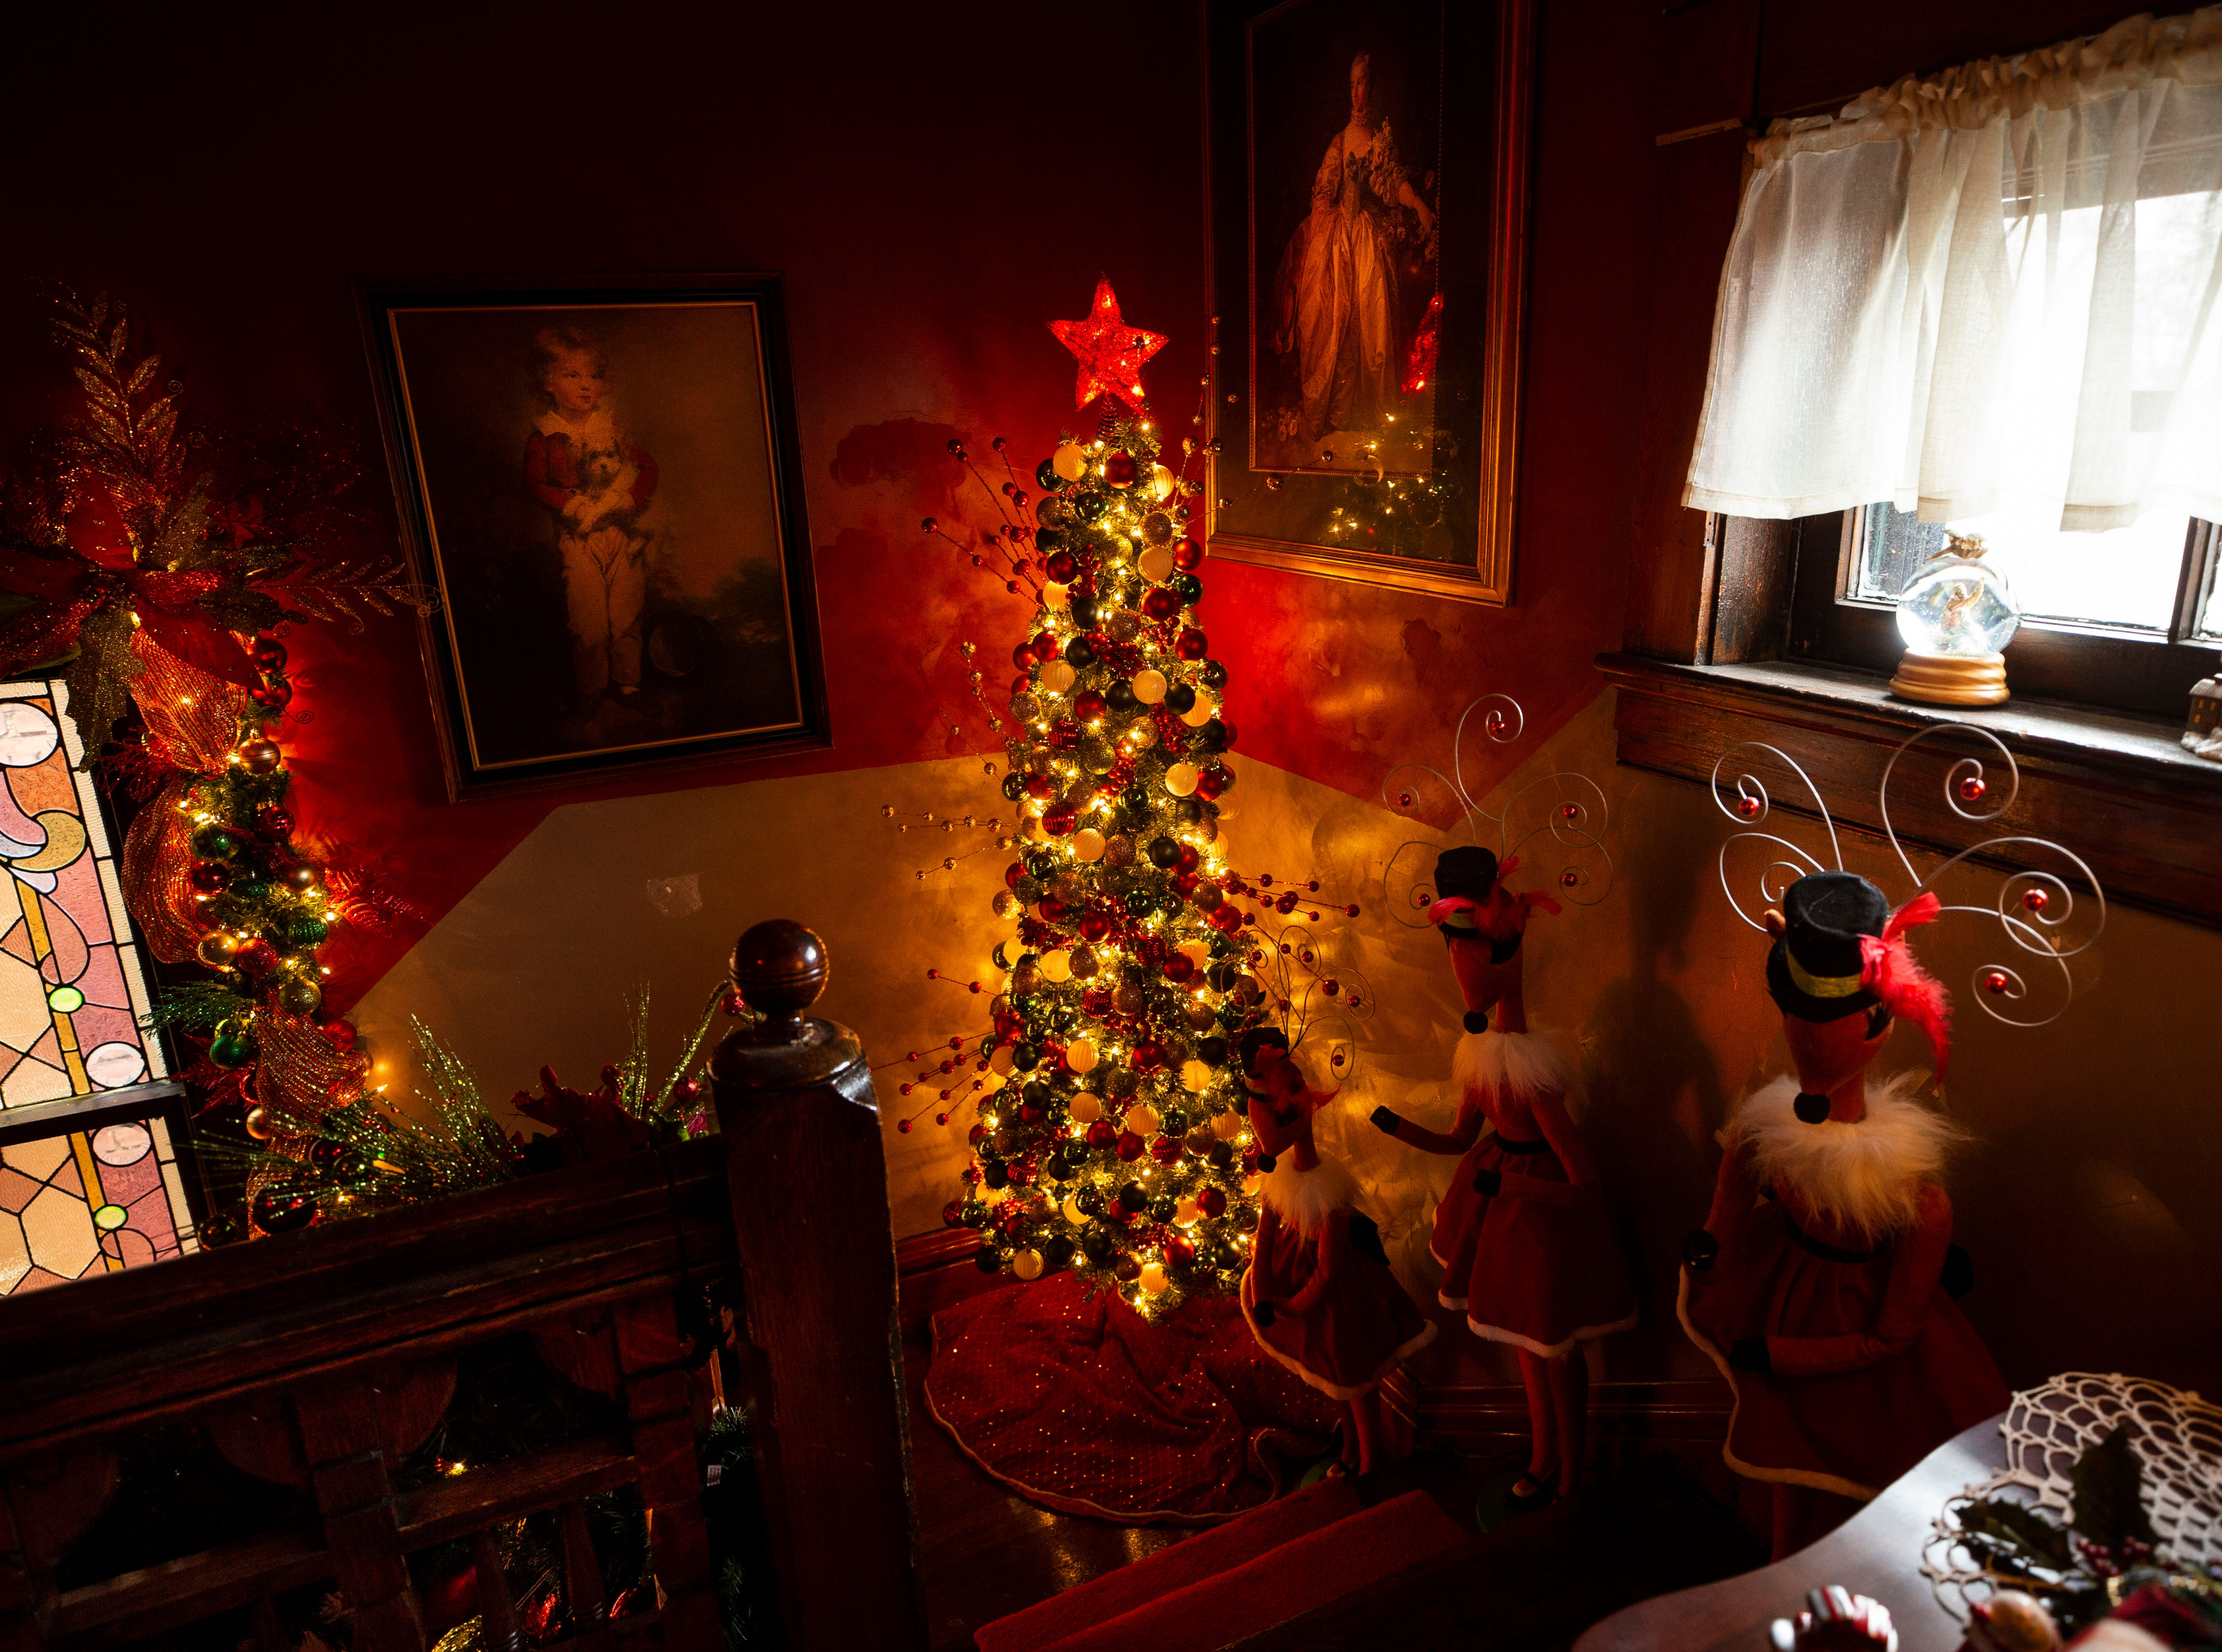 """David Brown spends about 20 to 30 hours a week decorating the 6,000-square foot, three-story home, including the stairs with more than 7,000 ornaments. ItÕs fun, itÕs exhausting, but itÕs well worth it,"""" he said, who gets help from cousins and friends."""